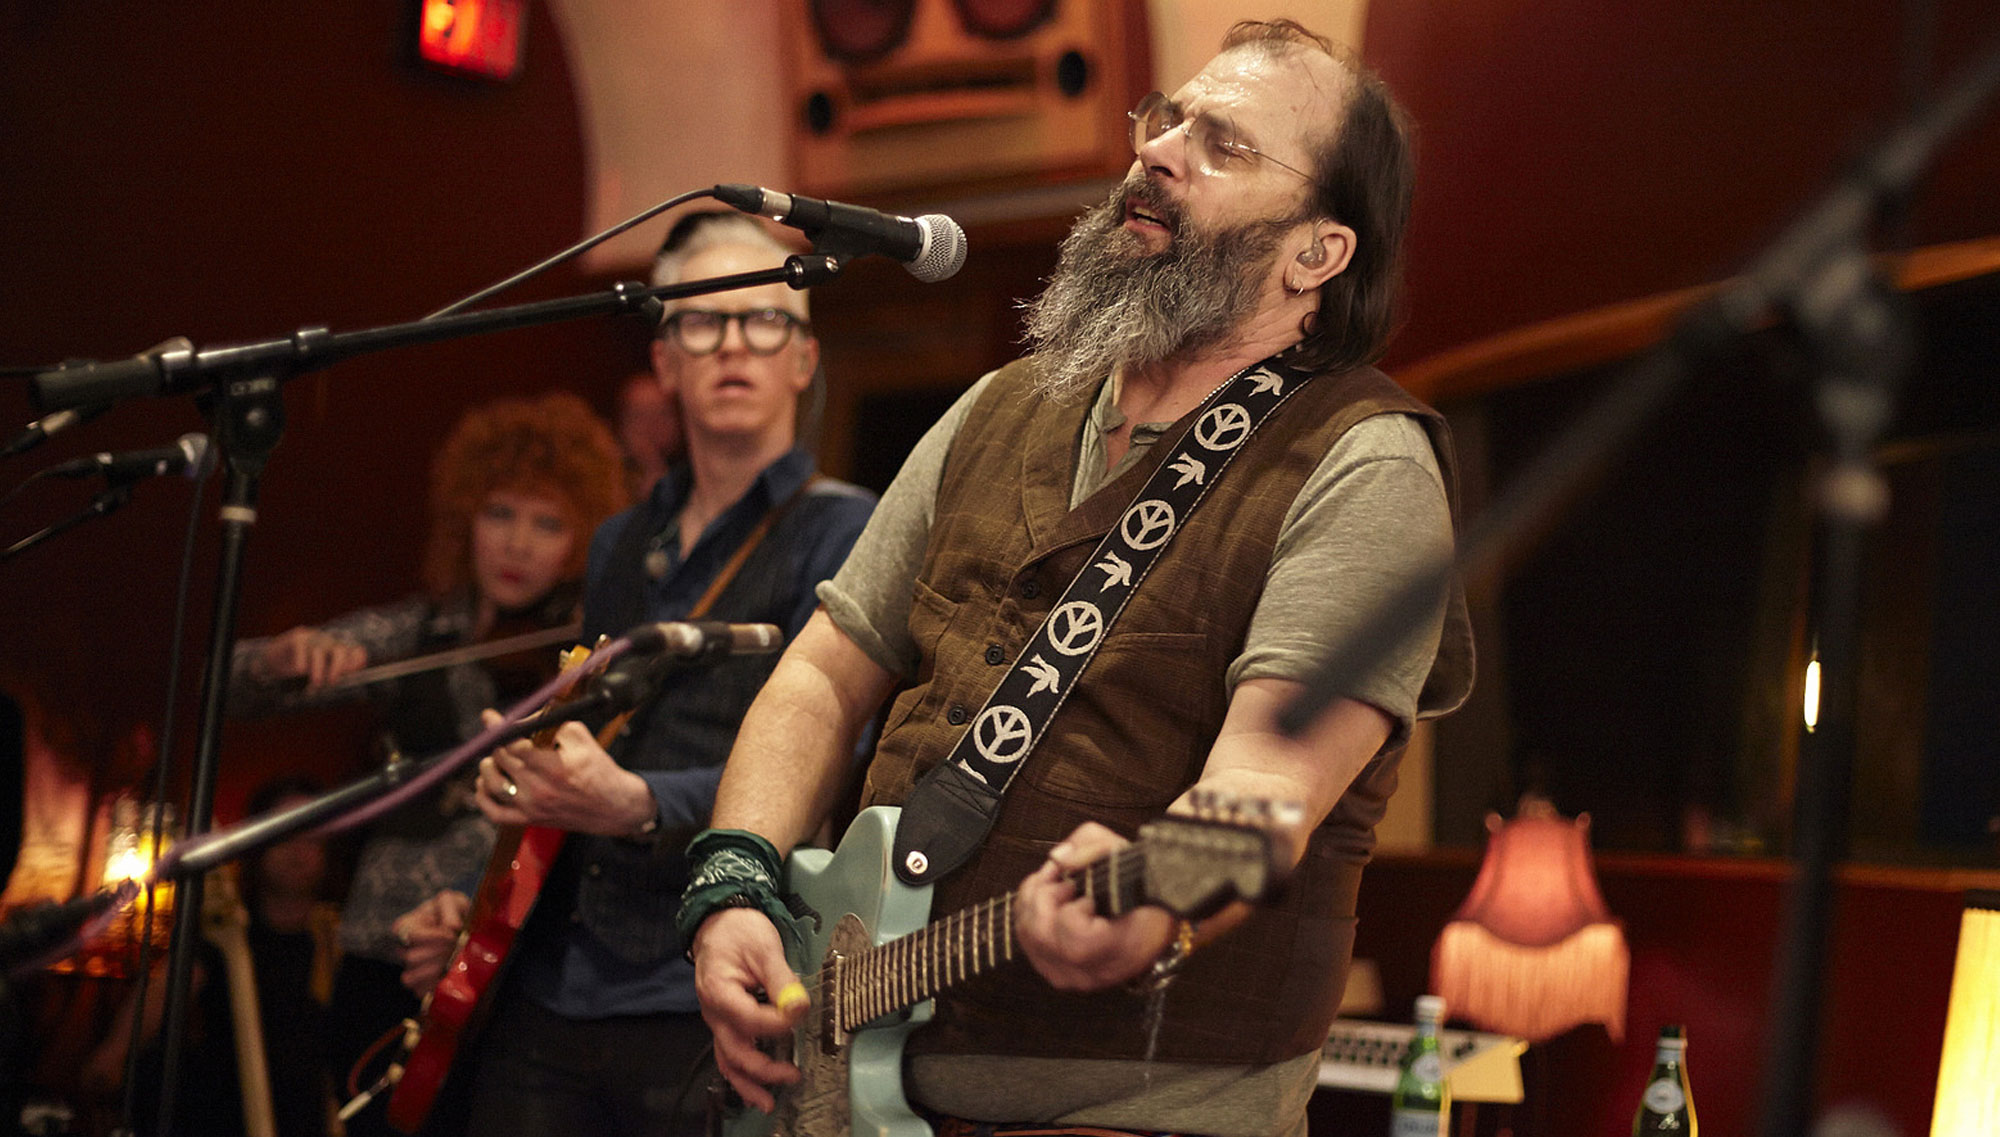 STEVE EARLE & THE DUKES  <H5>30th Anniversary of <i>Copperhead Road</I>  </h5><h5>w/ special guests The Mastersons  <h5><h5>April 7  </h5>